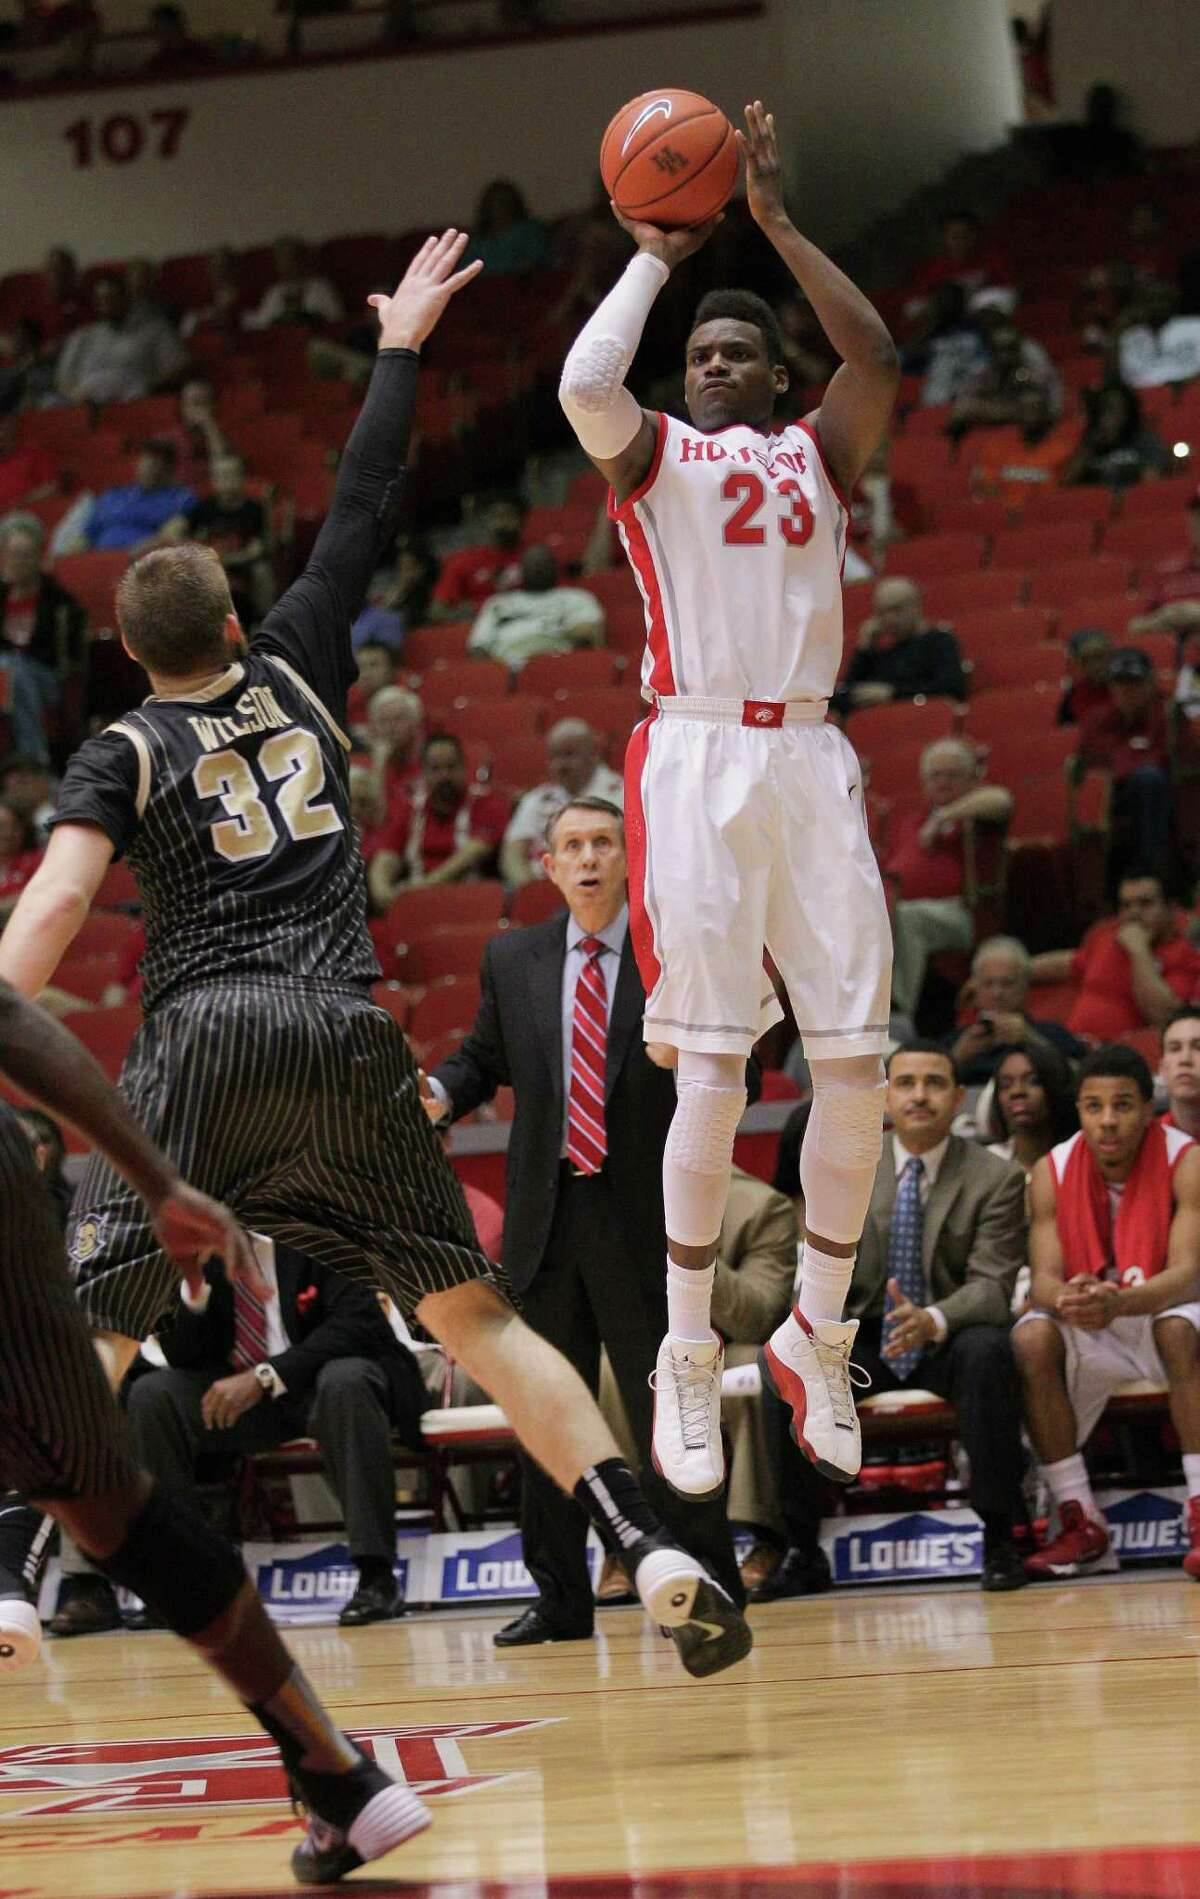 Danuel House averaged nearly 13 points per game during his two seasons at UH.